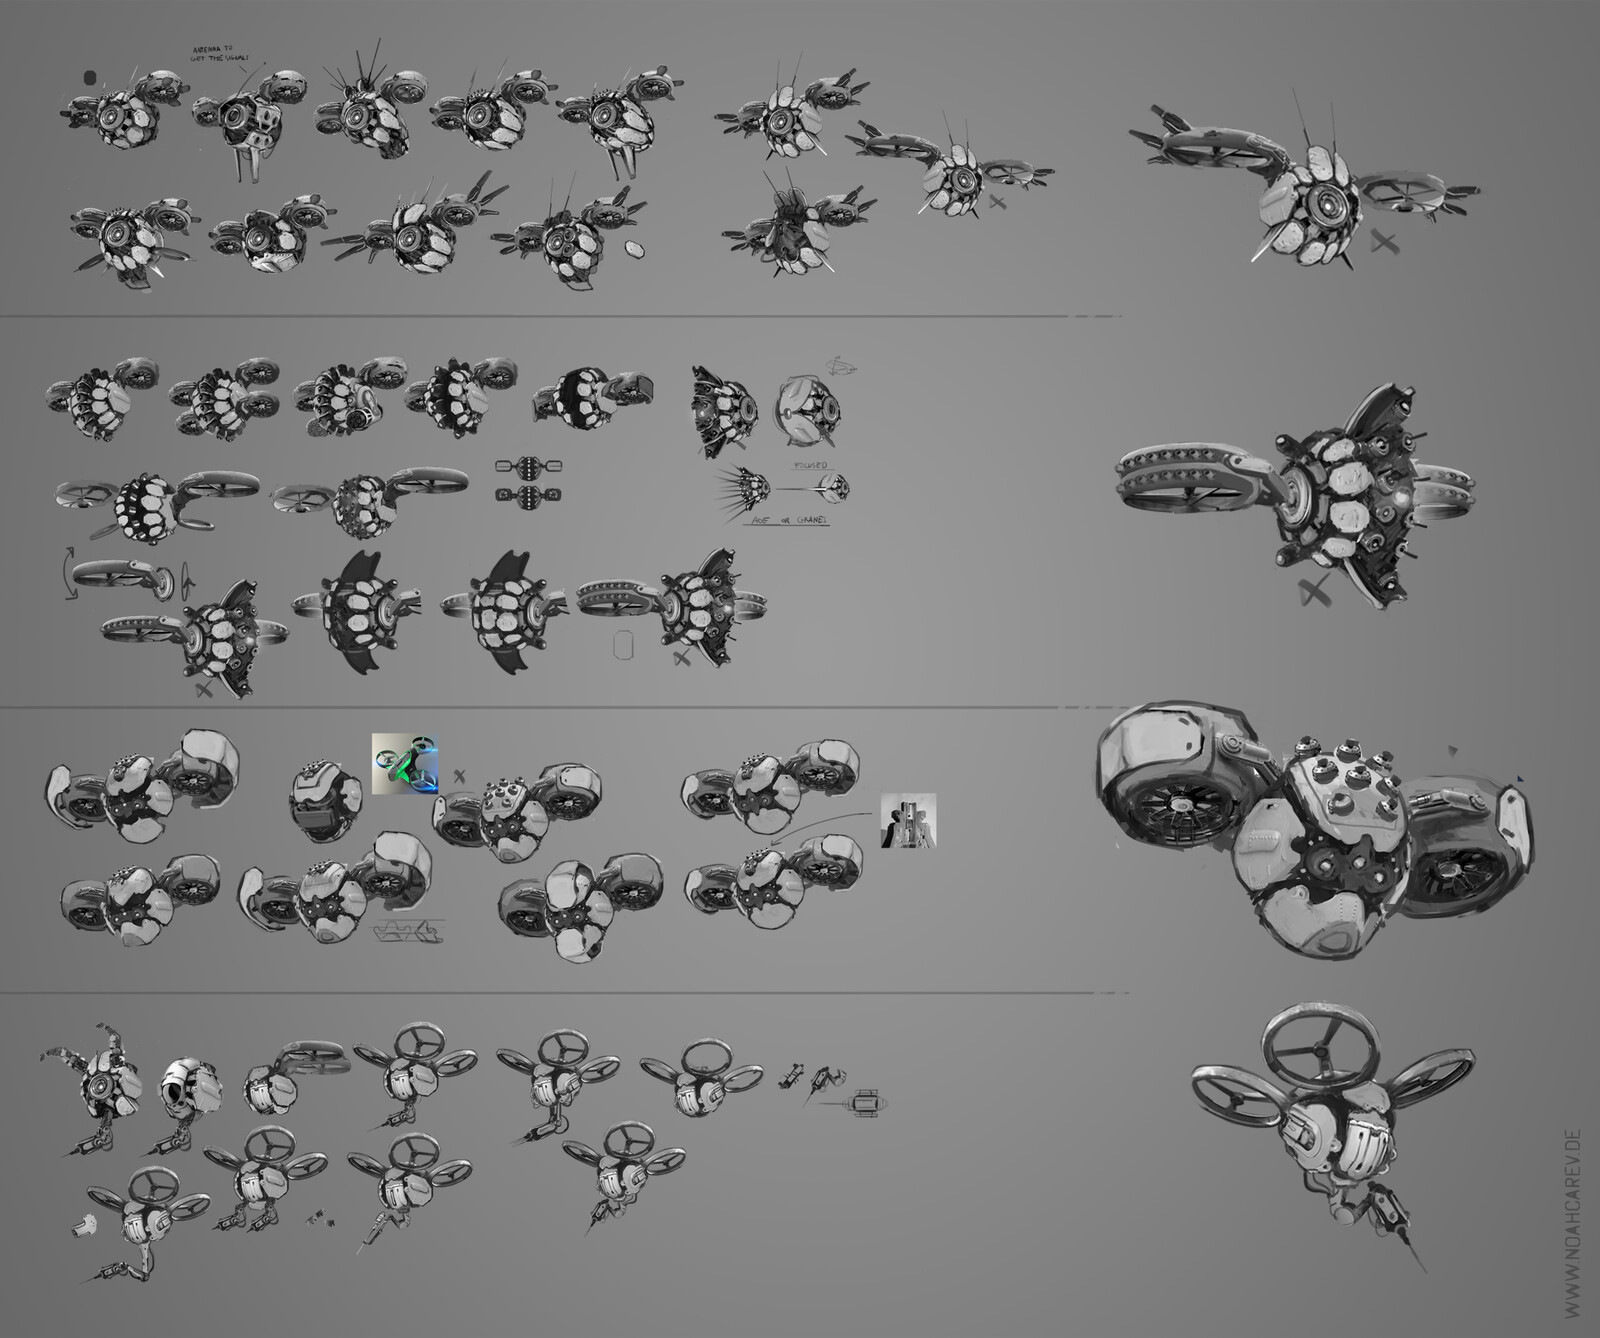 Concepts for each drone